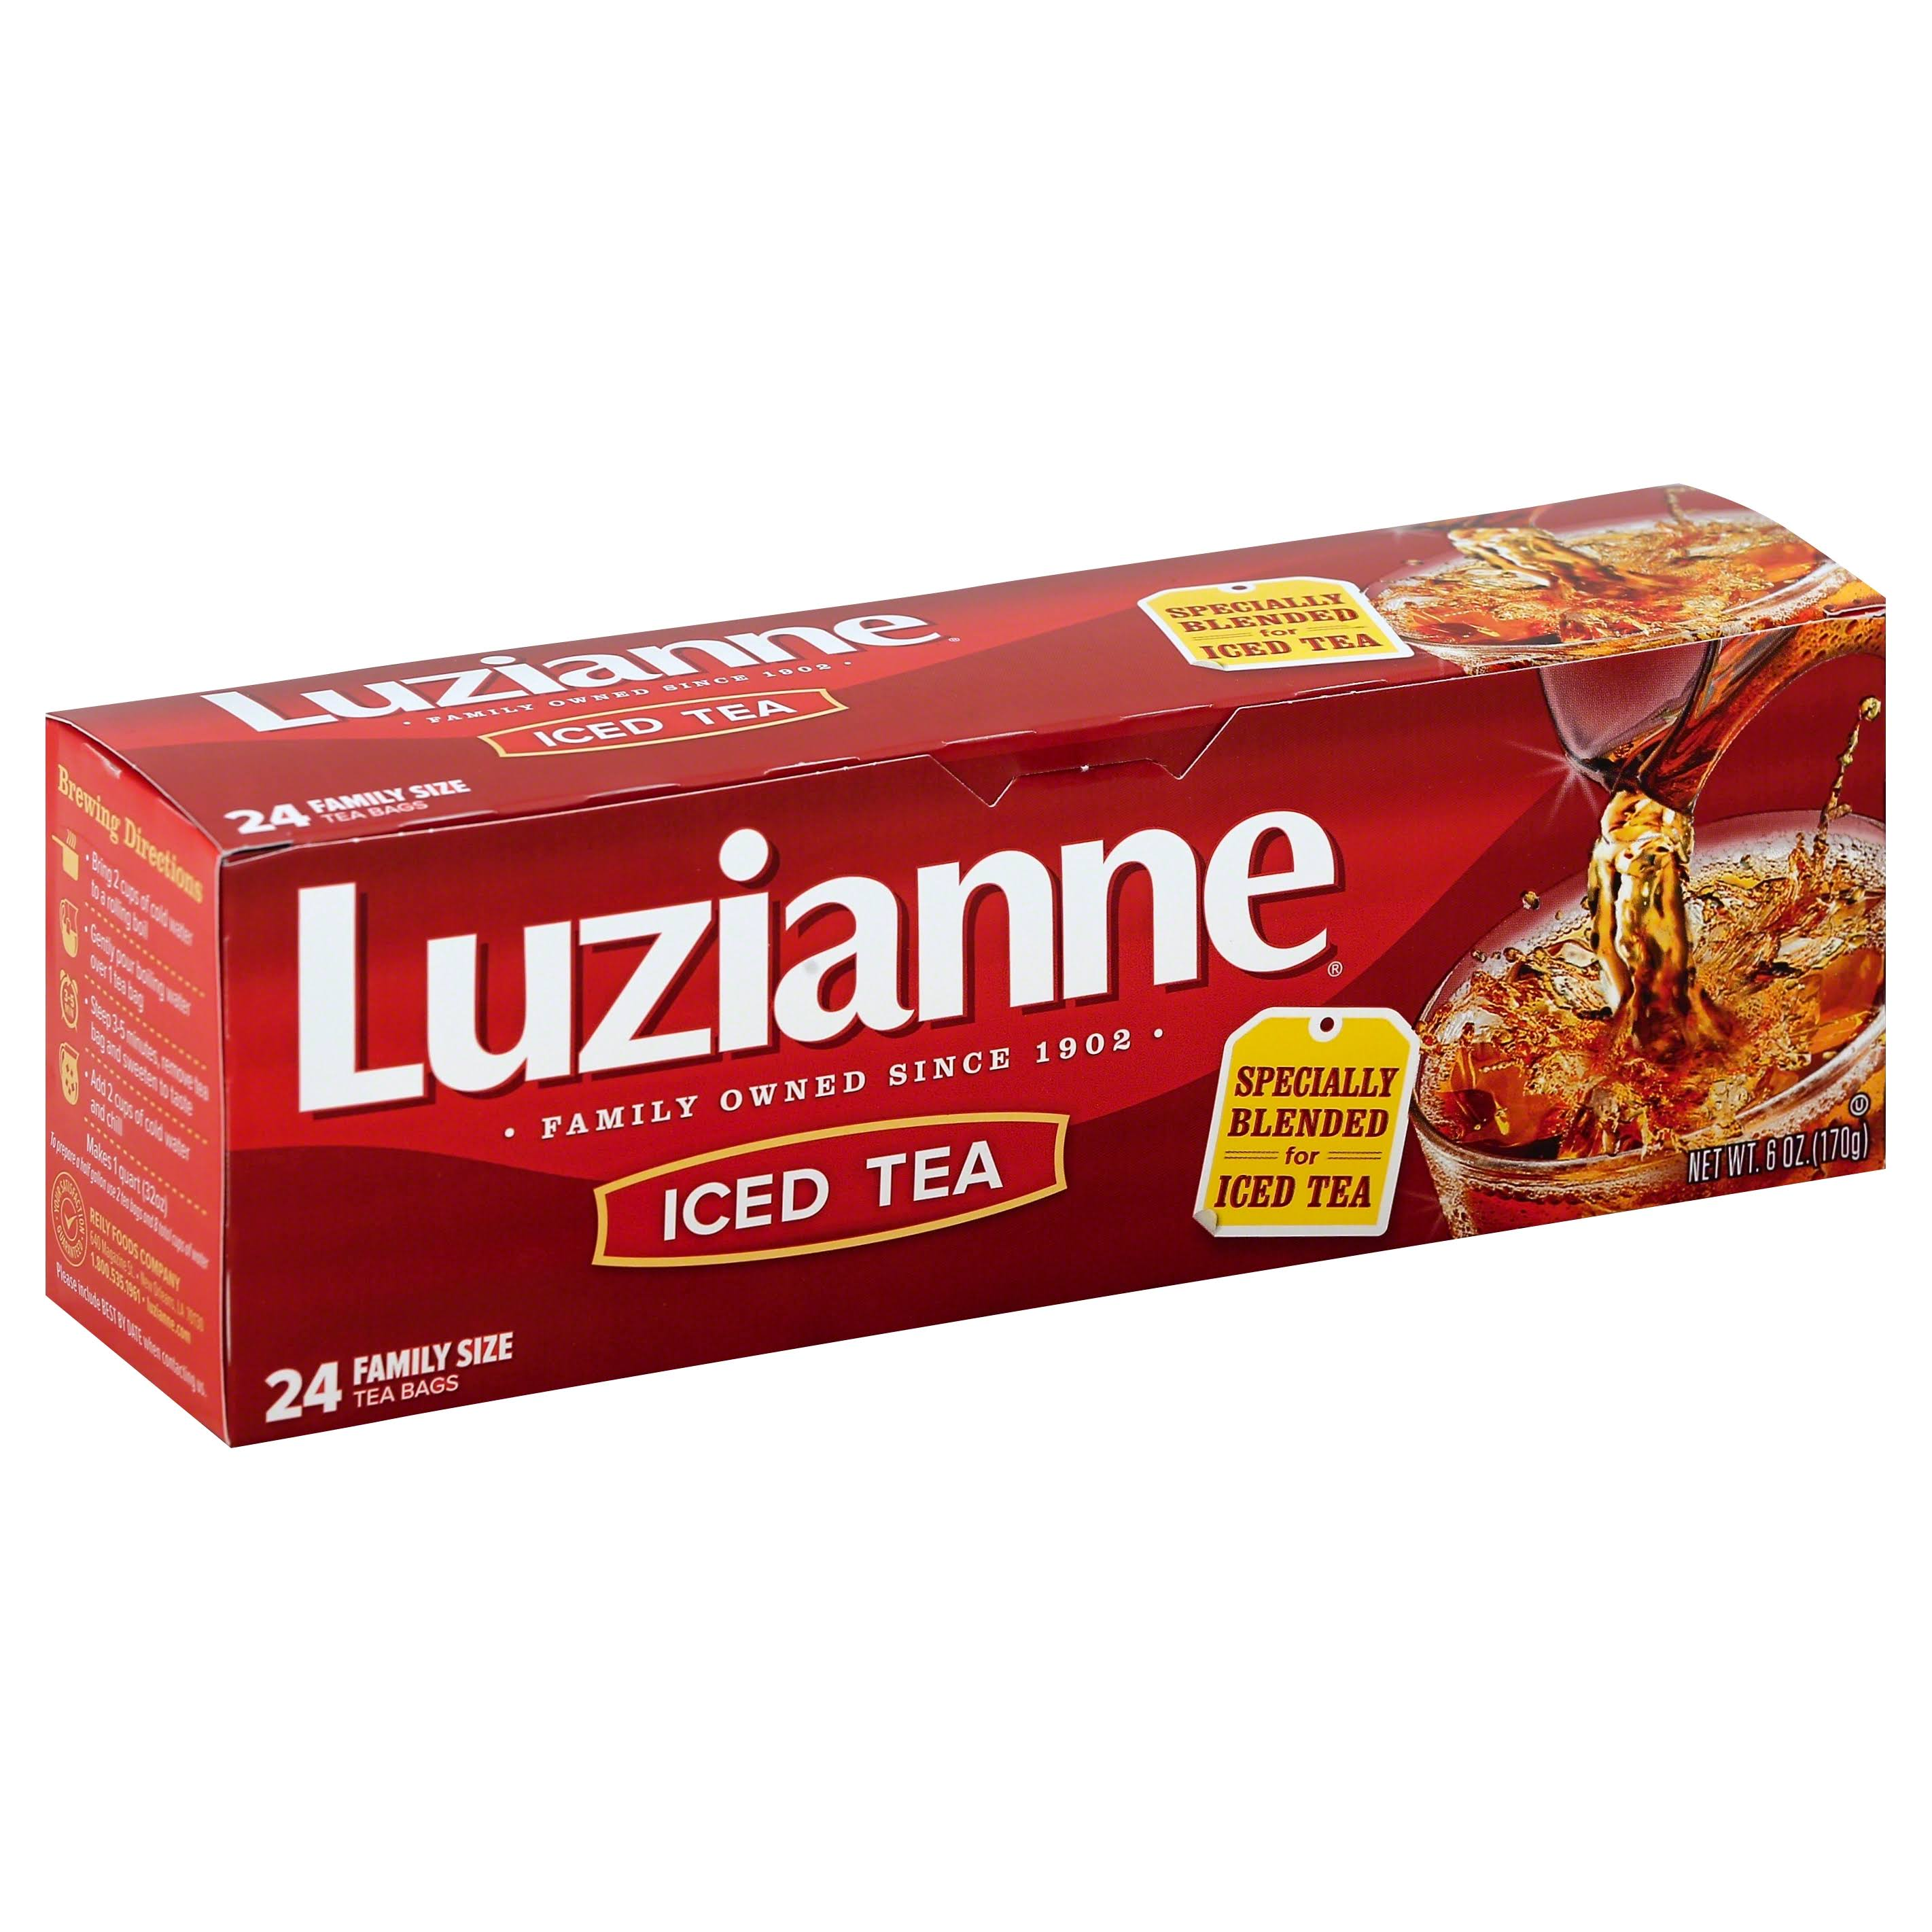 Luzianne Iced Tea Family Quart Tea Bags - 24ct